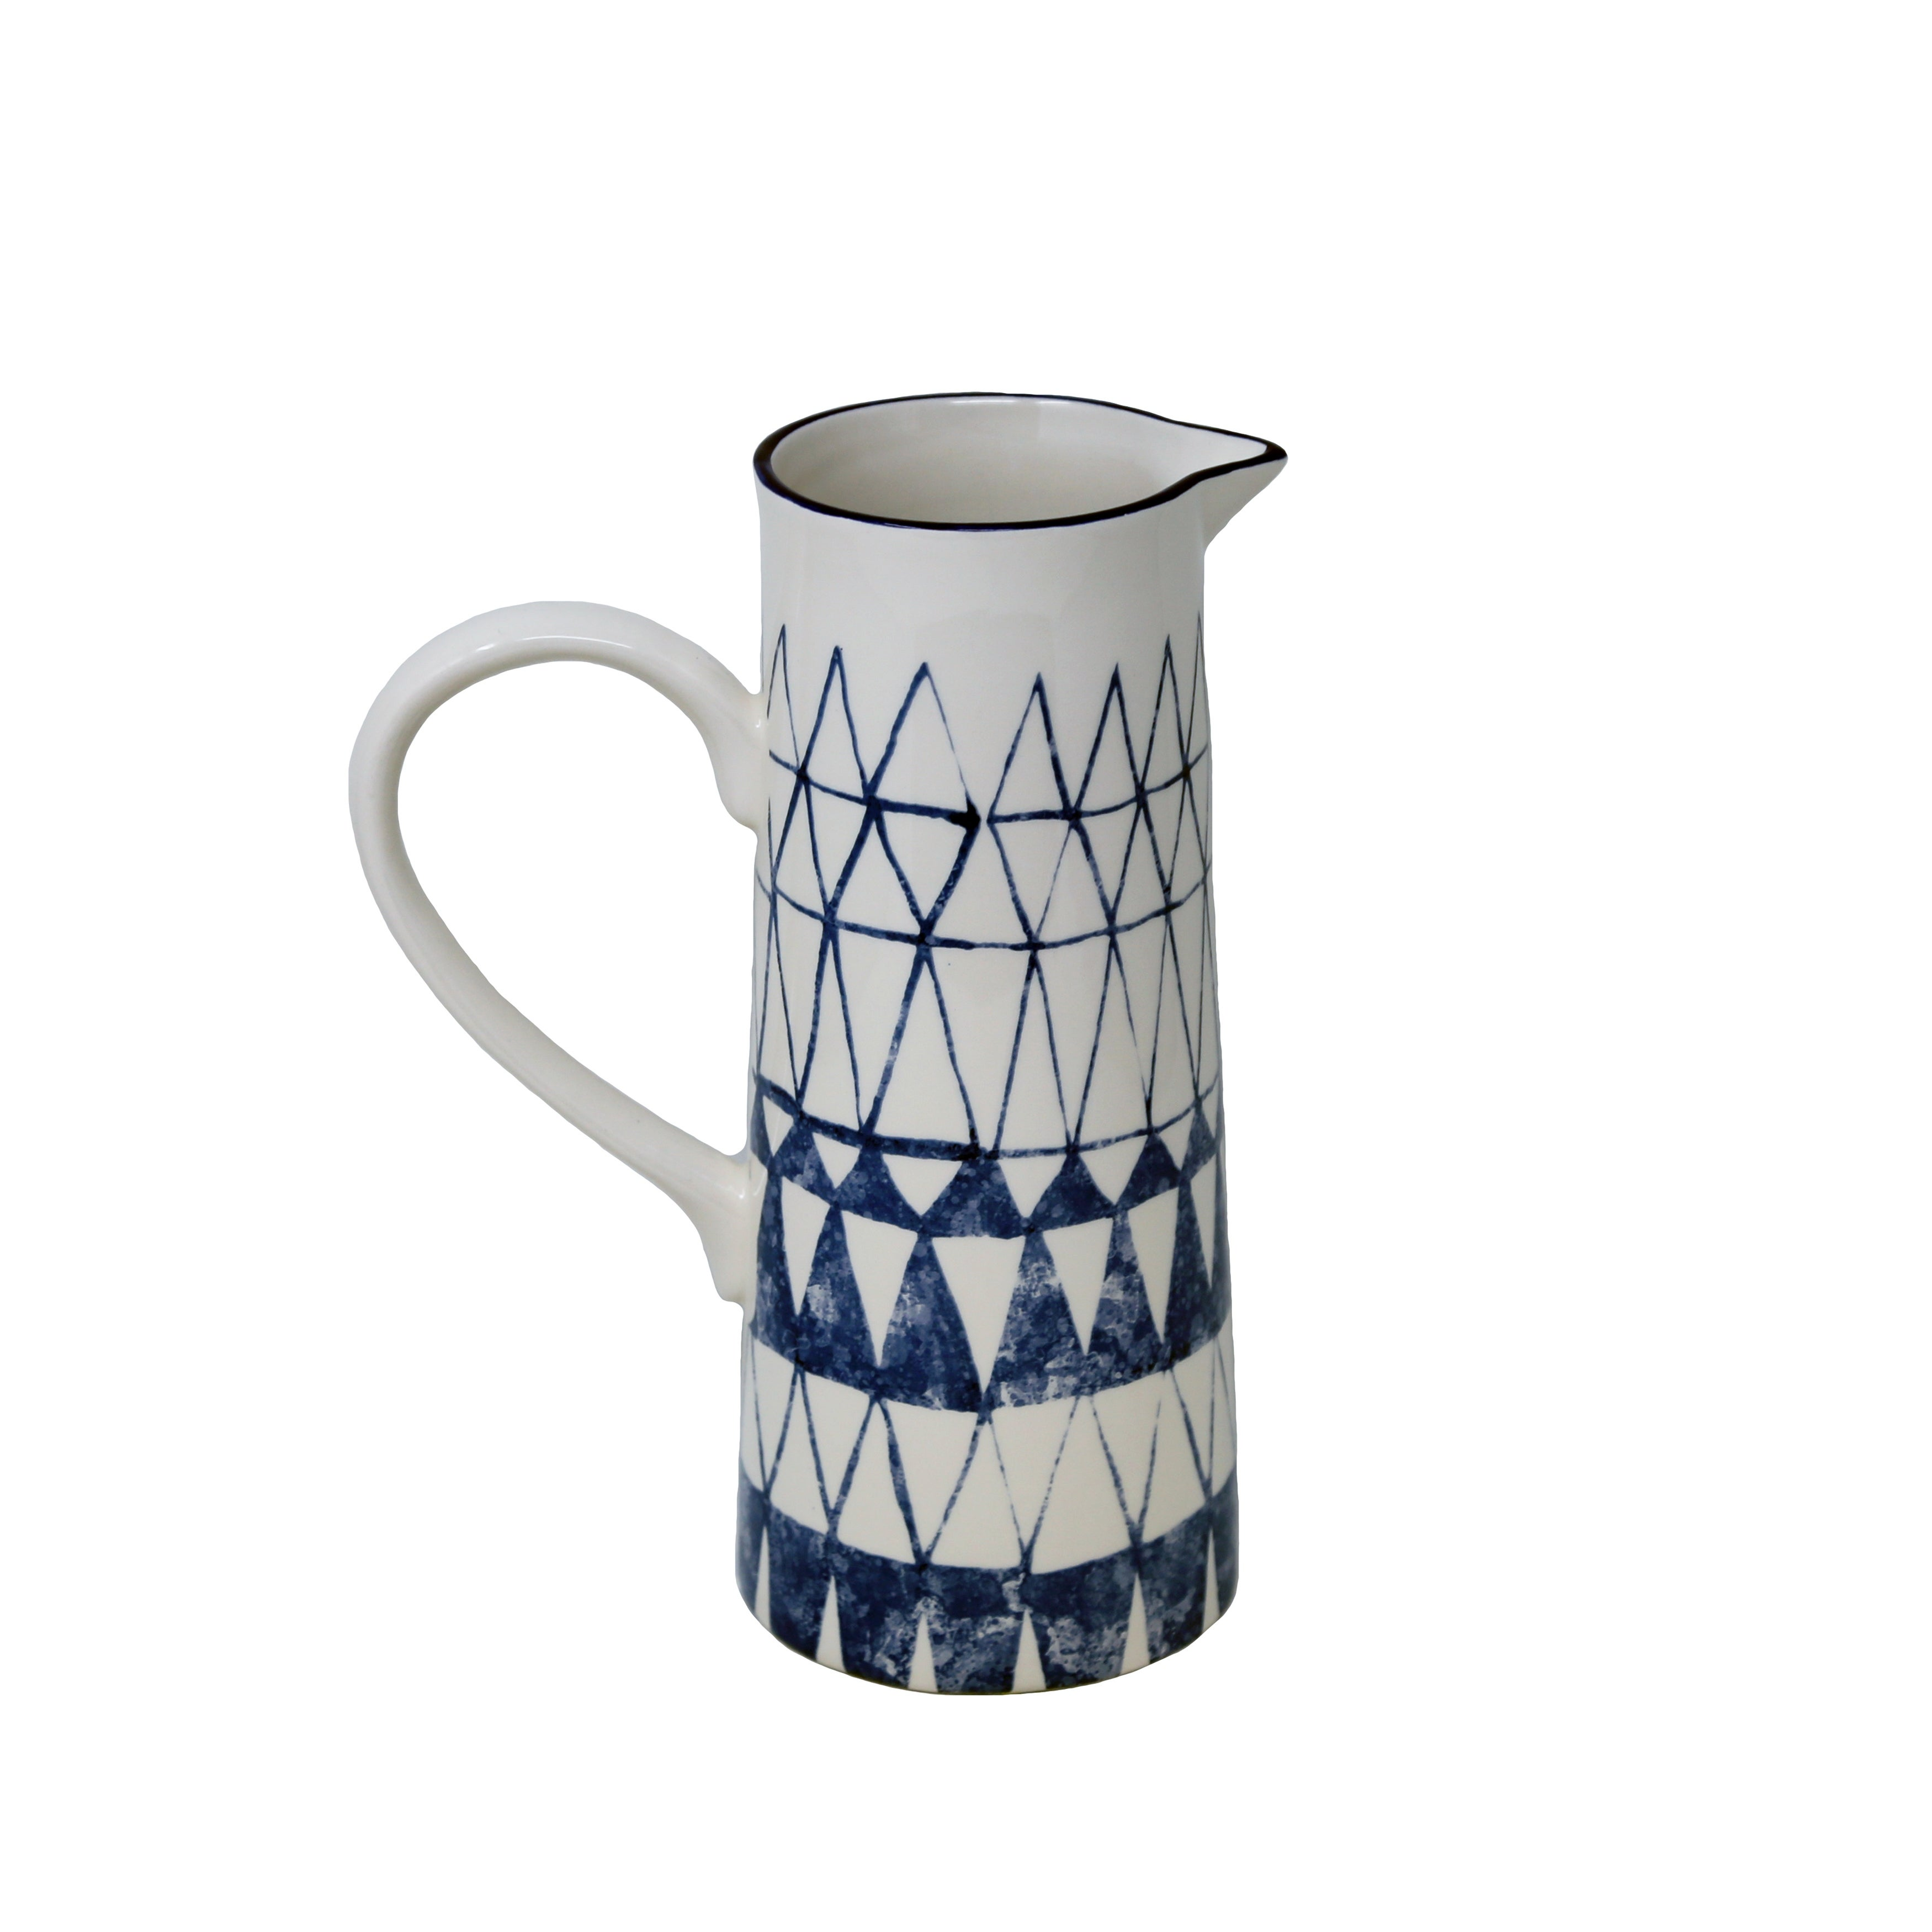 Ceramic Decorative Pitcher with Geometric Texture Surface and Small Handle, Small, White and Blue